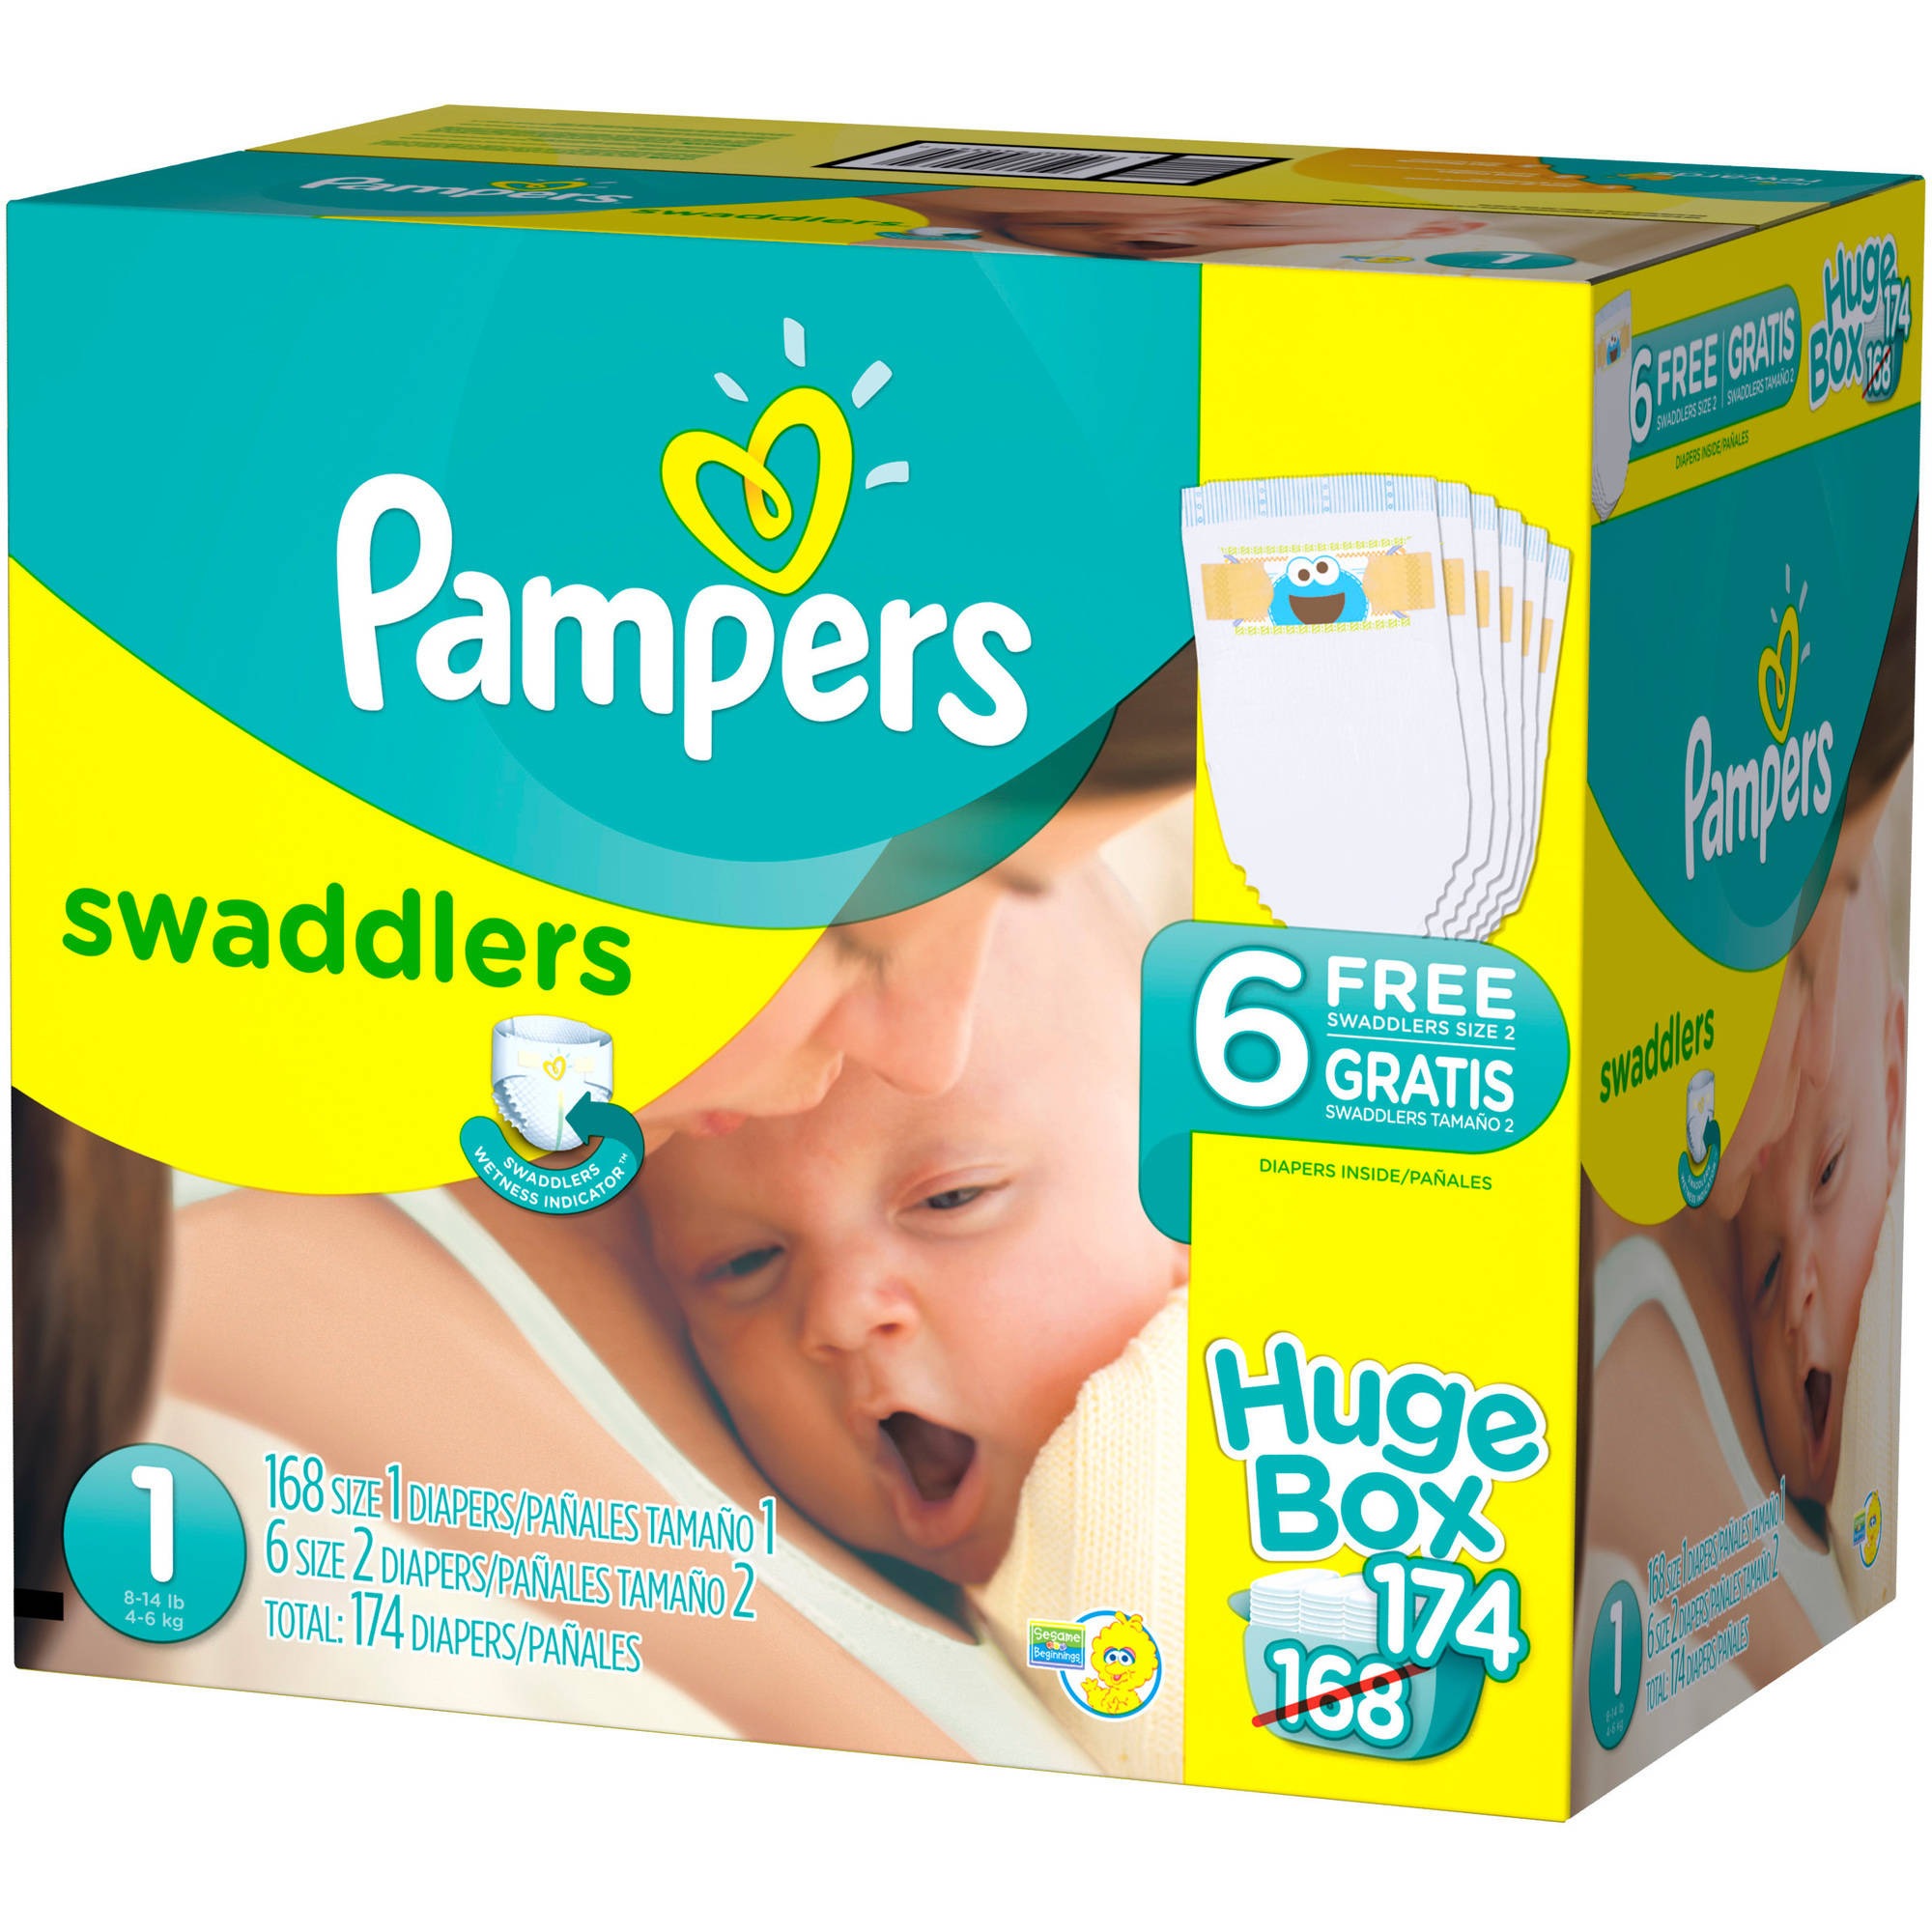 How to choose diapers